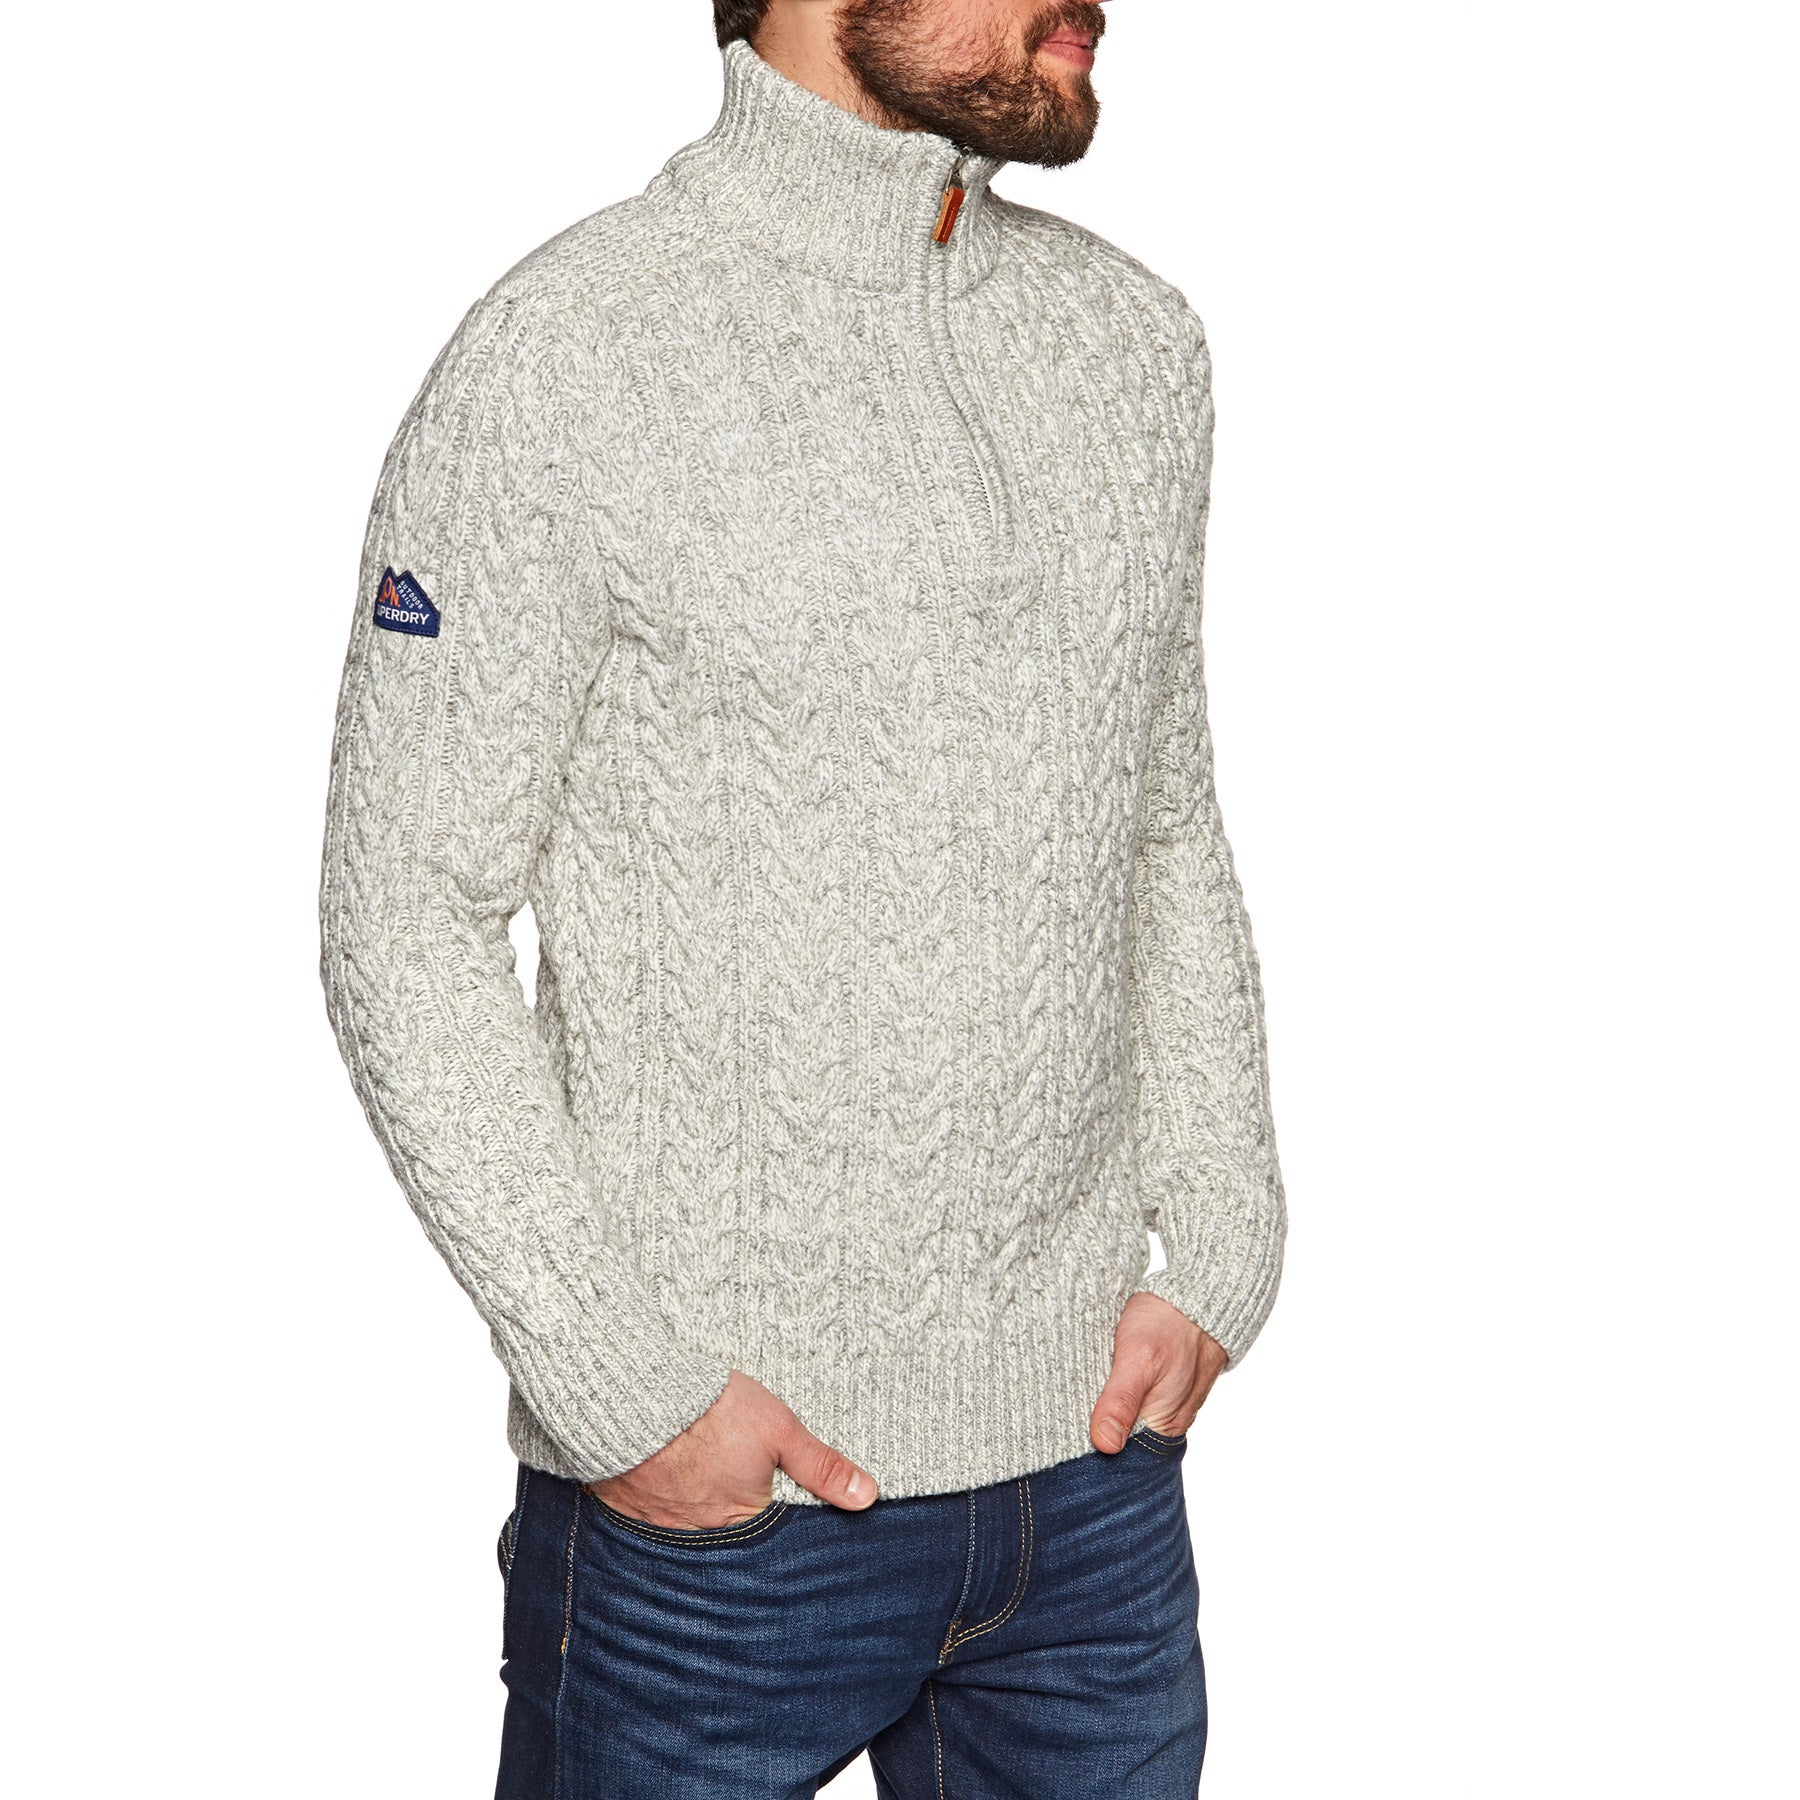 Superdry Jacob Henley Knits - Concrete Twist